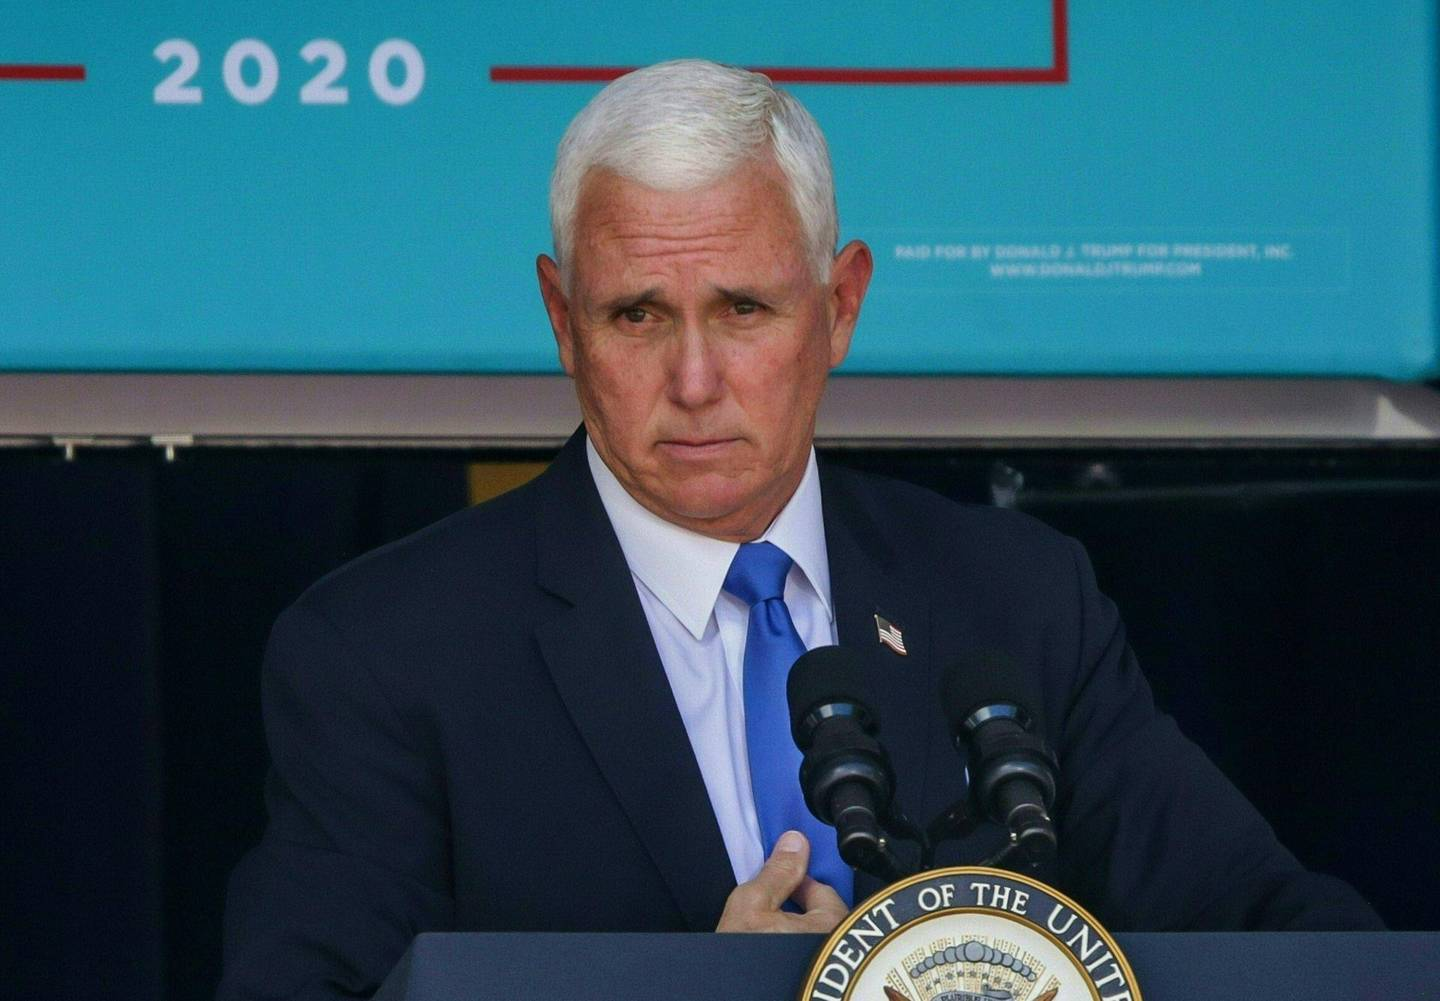 (FILES) In this file photo US Vice President Mike Pence speaks at a Latinos For Trump rally in Orlando, Florida on October 10, 2020.   US Vice President Mike Pence is opposed to using the constitution's 25th Amendment to force President Donald Trump from office, despite pressure from democrats and some Republicans, the New York Times reported on January 7, 2021. While Pence has not spoken publicly about invoking the mechanism, never used before in US history, the newspaper cited a person close to the vice president saying he is against the radical move. / AFP / Zak BENNETT